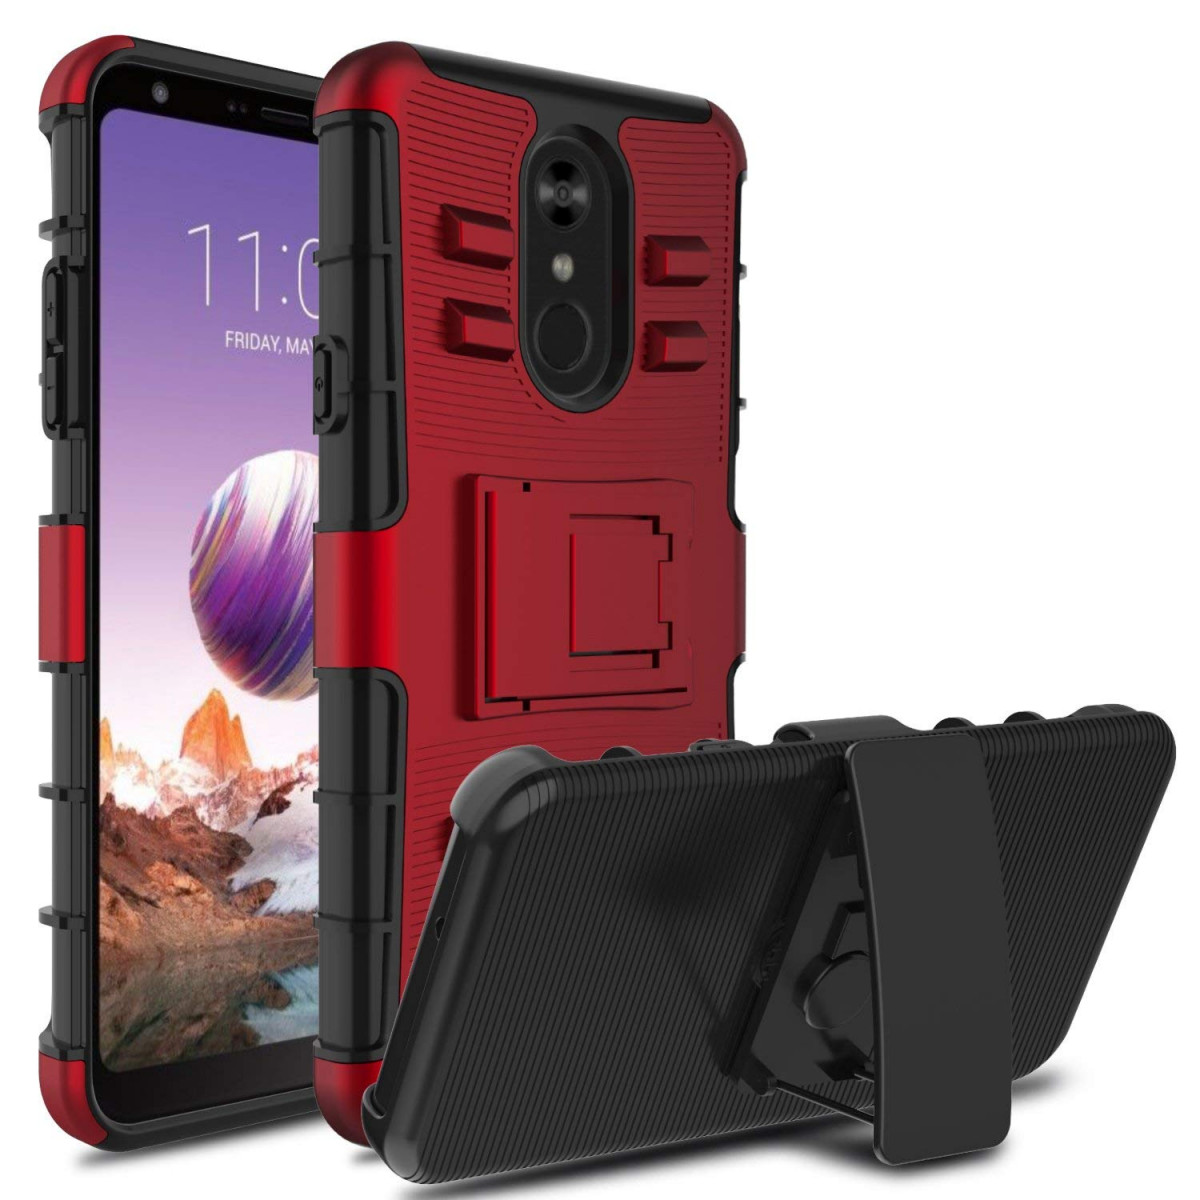 sports shoes 79931 8ee44 Innens Compatible LG Stylo 4 Case, LG Q Stylus Case, Shockproof Hybrid  Heavy Duty Armor Defender Protective Holster Case Cover with Kickstand Belt  ...